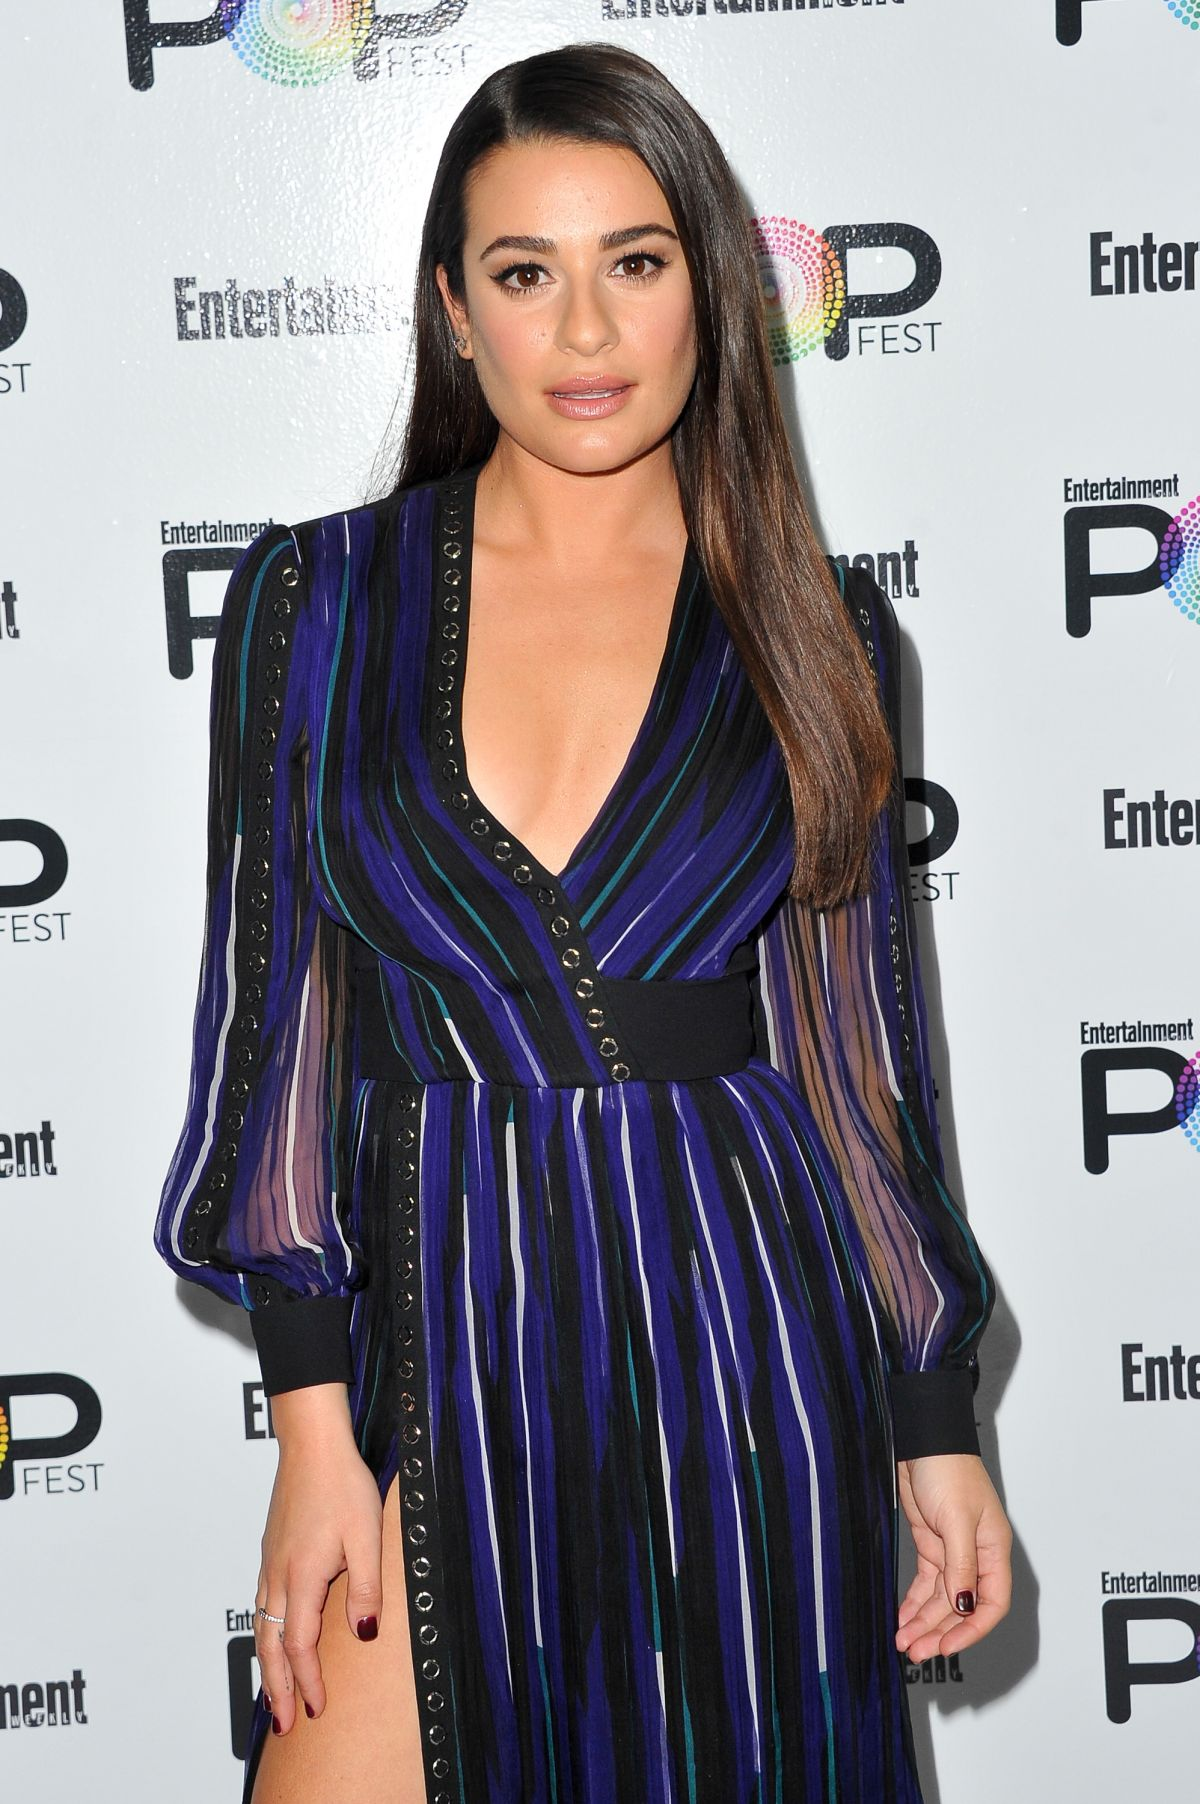 LEA MICHELE at Entertainment Weekly Popfest in Los Angeles 10/29/2016